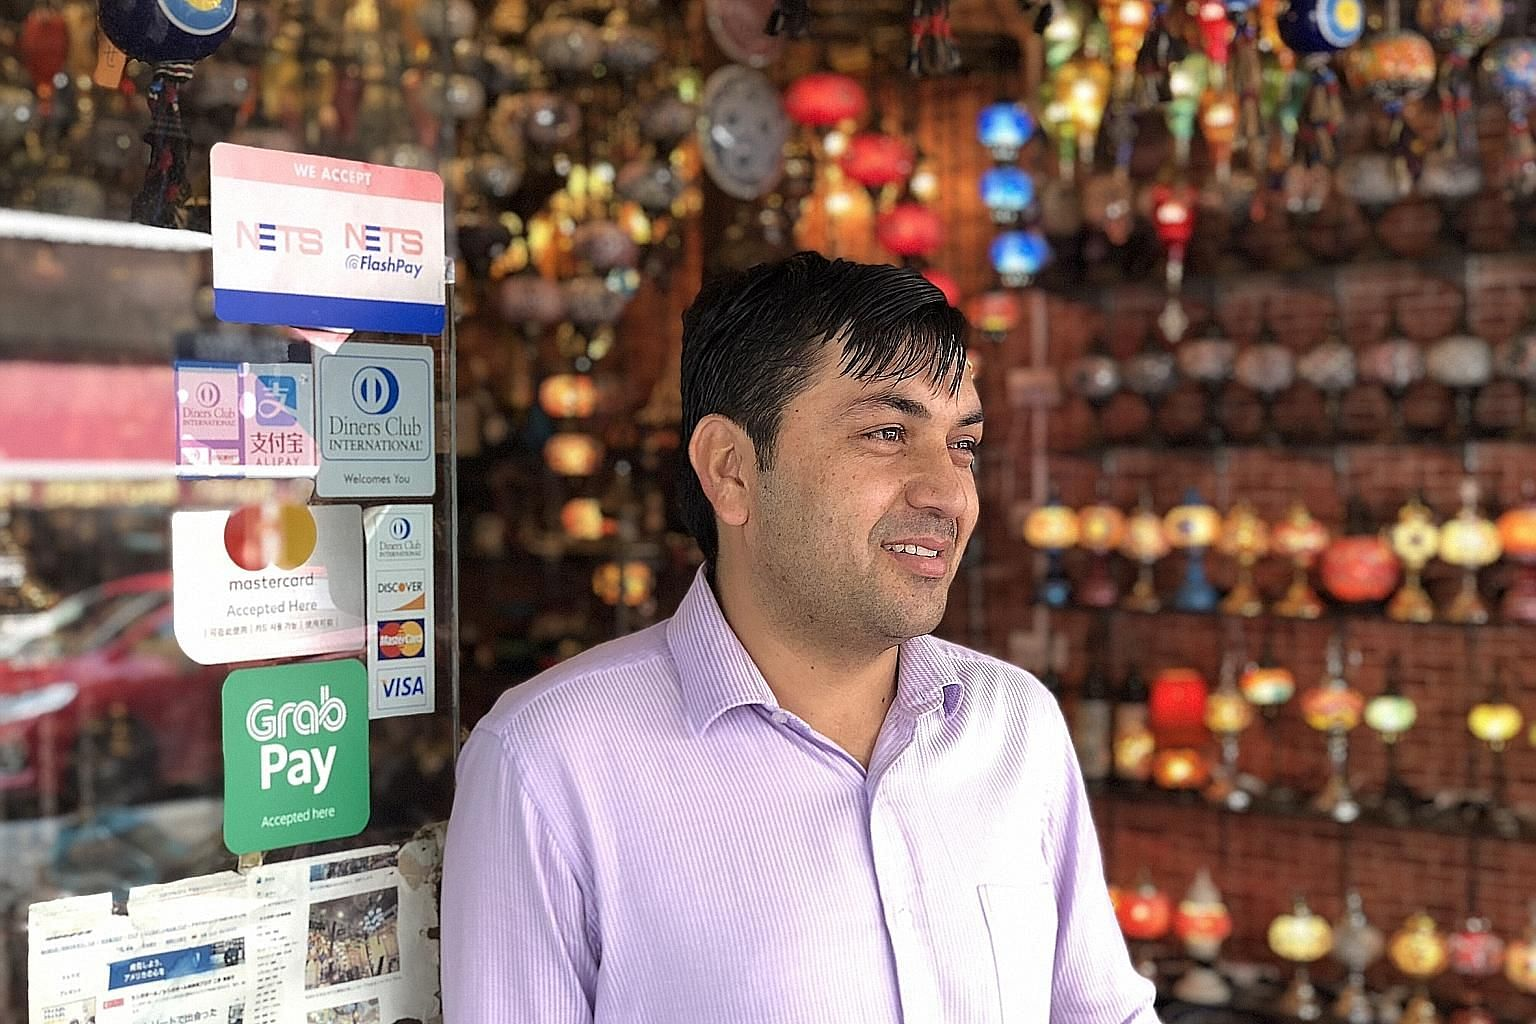 Mr Faizullah Saadullah operates family-owned retail shop Sufi Trading, which has used the GrabPay platform for three months and adopted Alipay recently. Mr Faizullah says the Alipay platform allows the Arab Street shop, which sells Turkish lamps, han